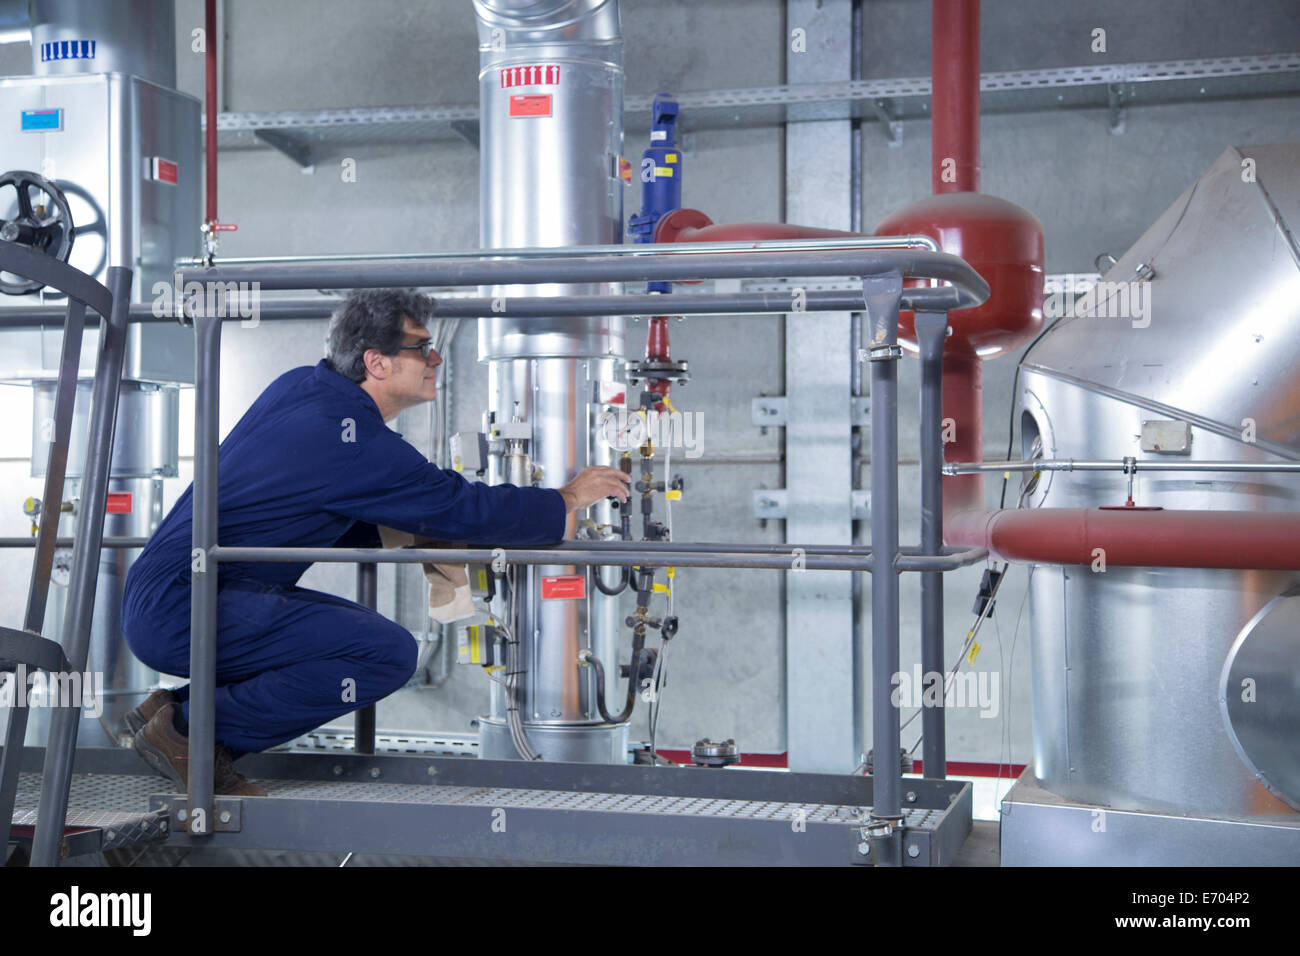 Engineer inspecting equipment from access platform in power station Stock Photo